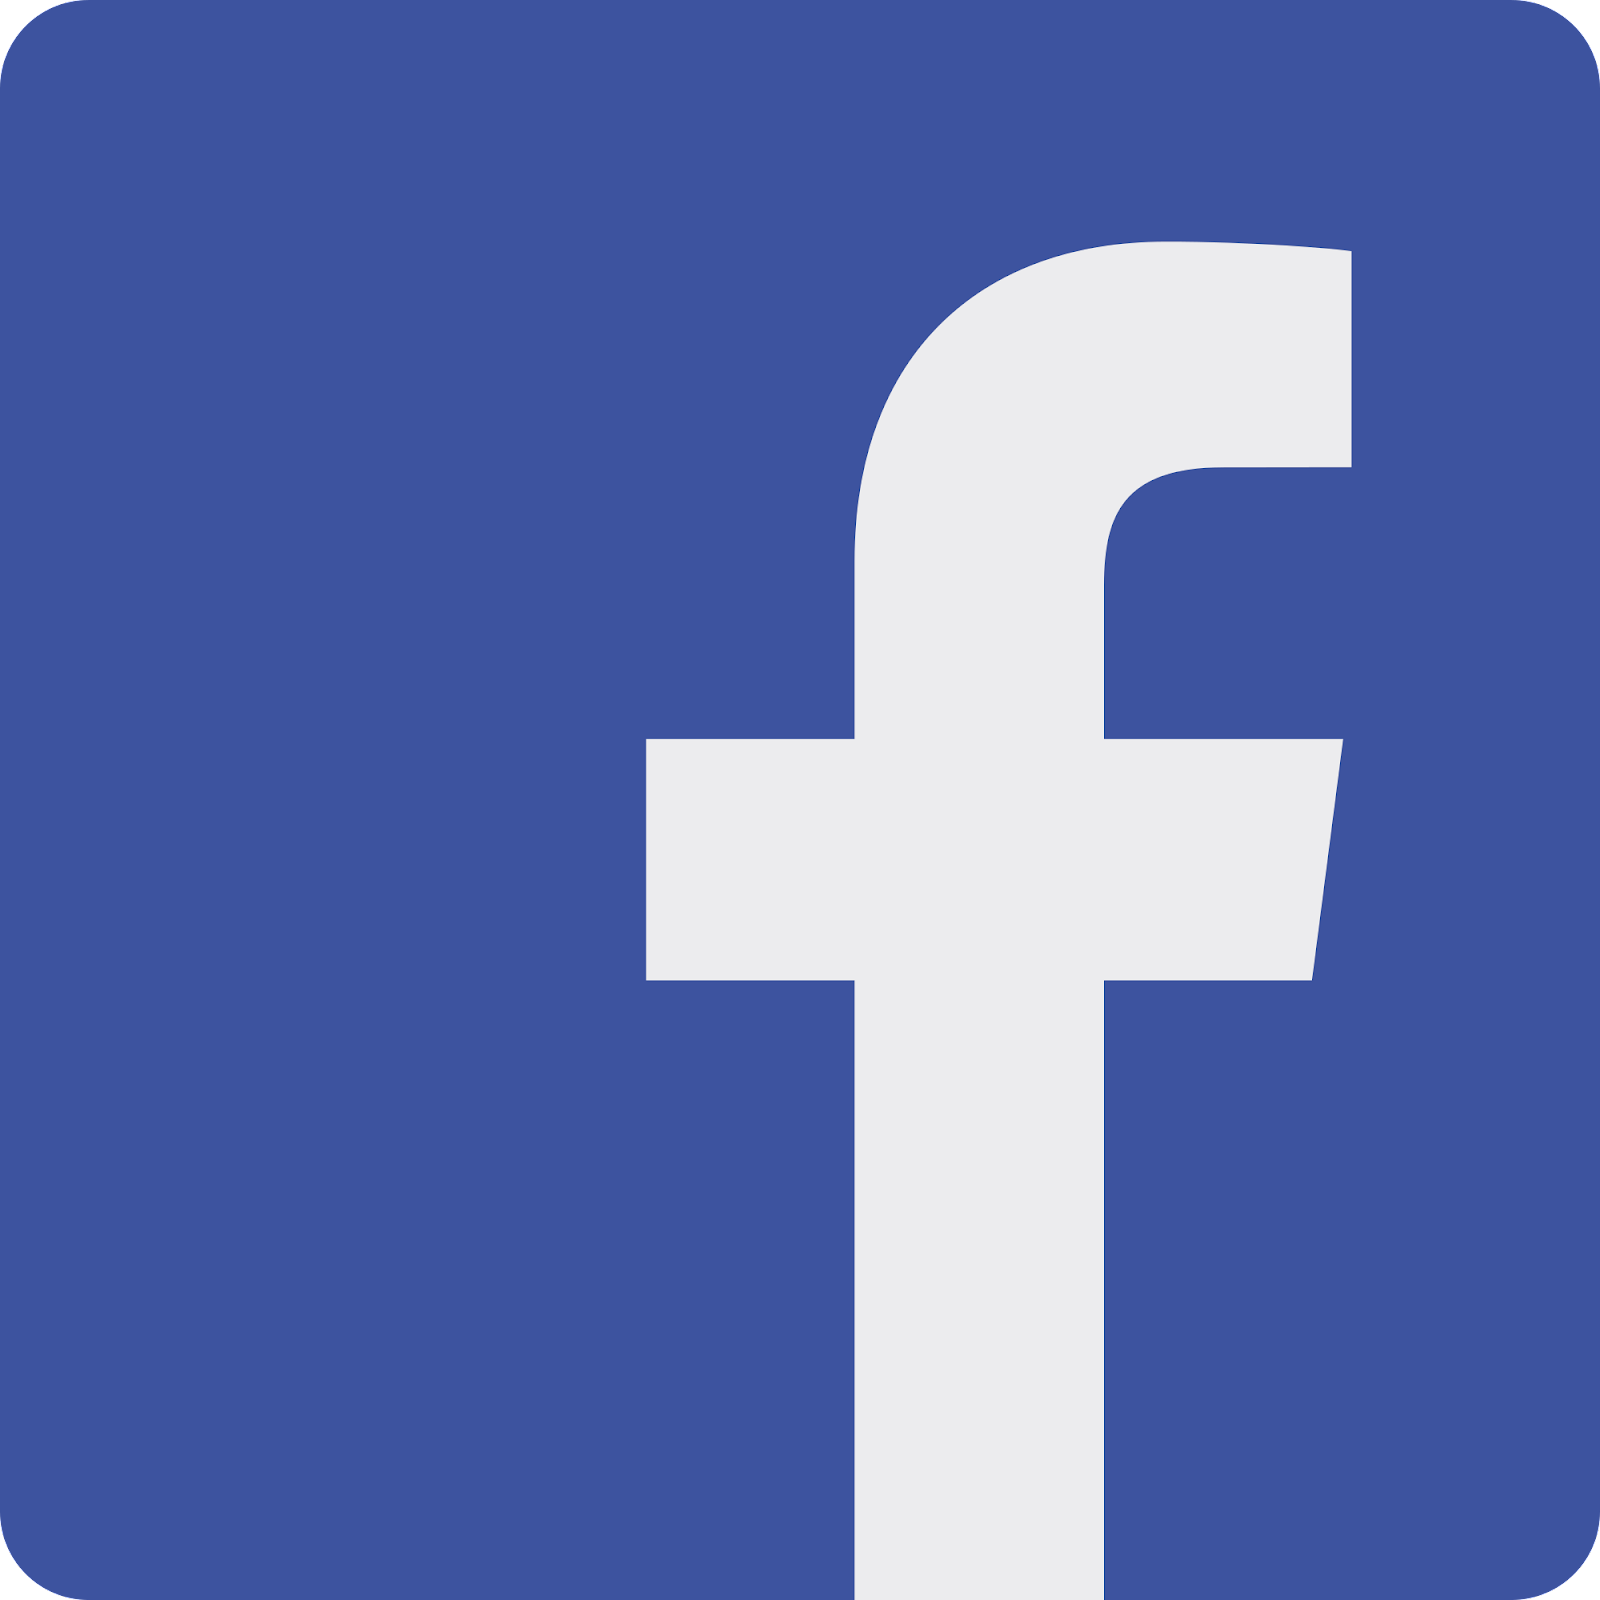 facebook icon 1.png